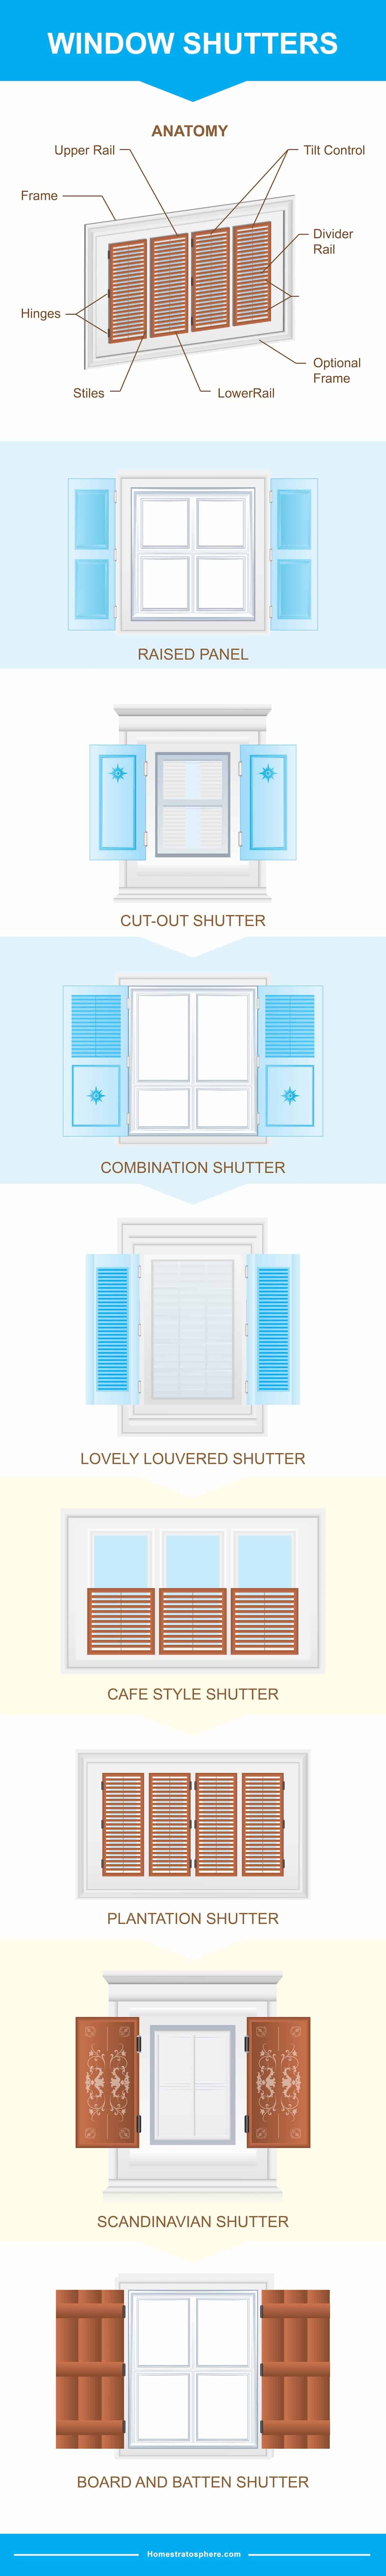 Types and styles of window shutters chart